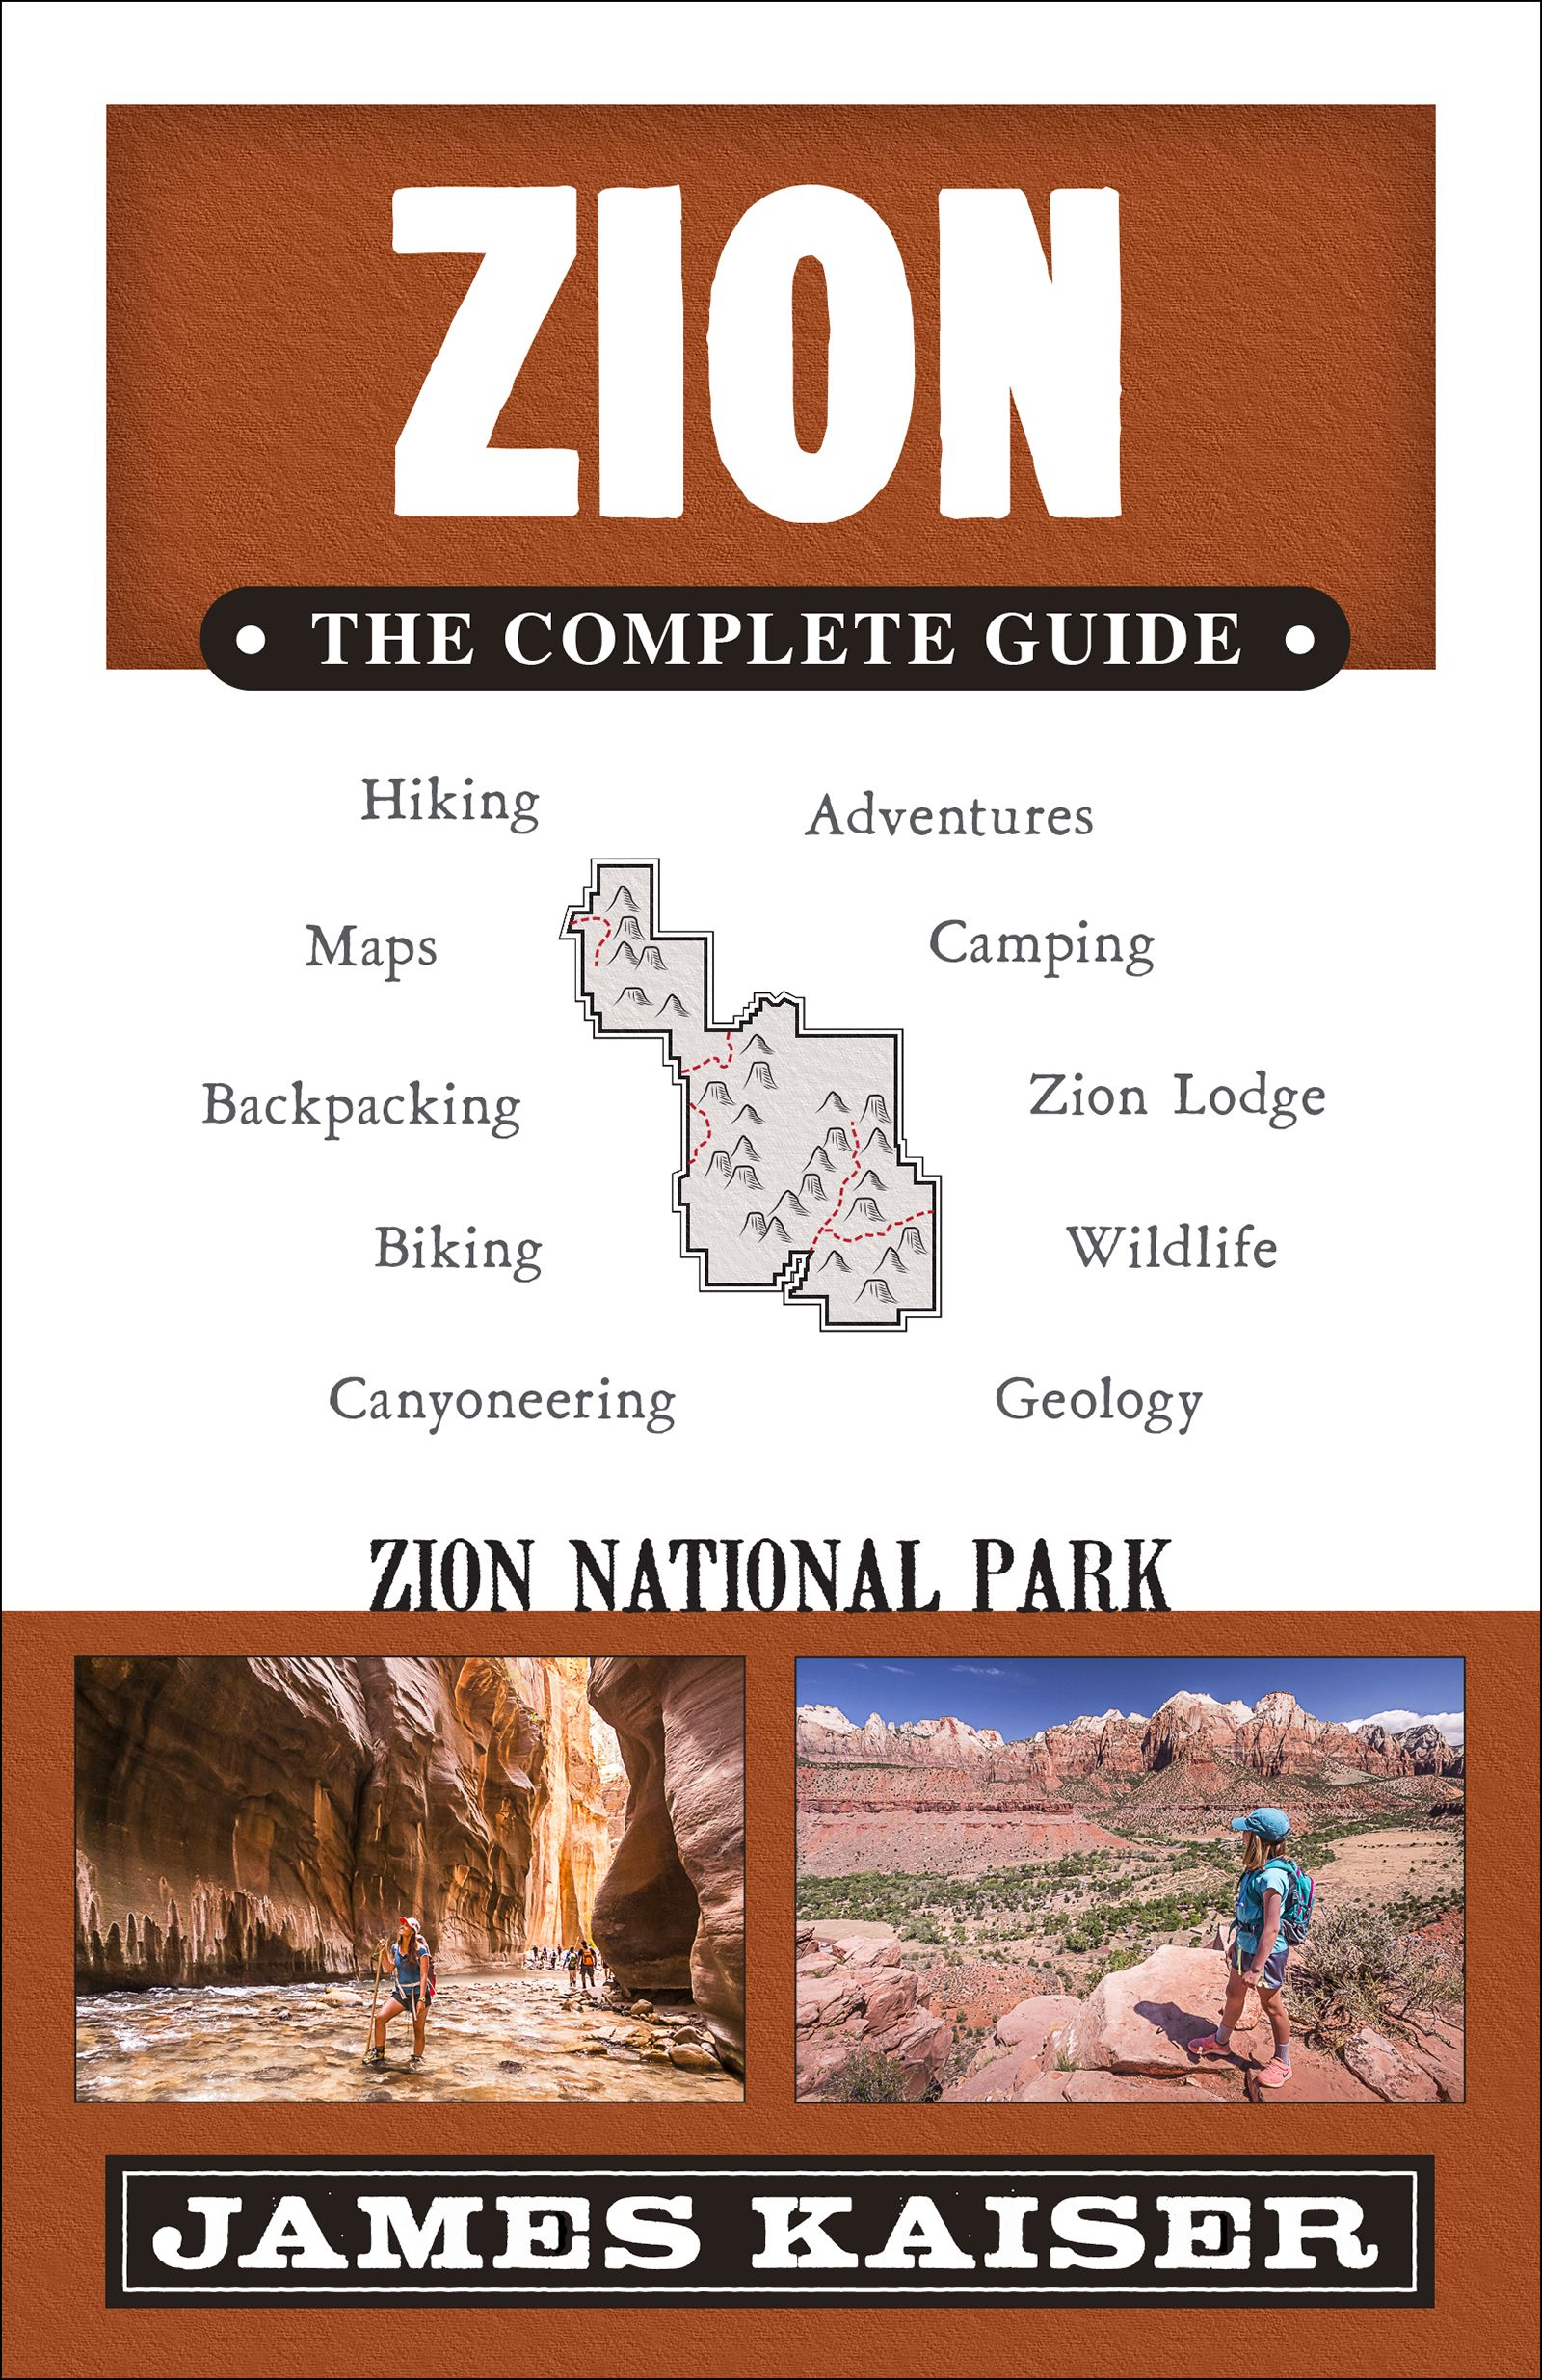 Full Color Guidebook To Zion National Park In Utah Filled With